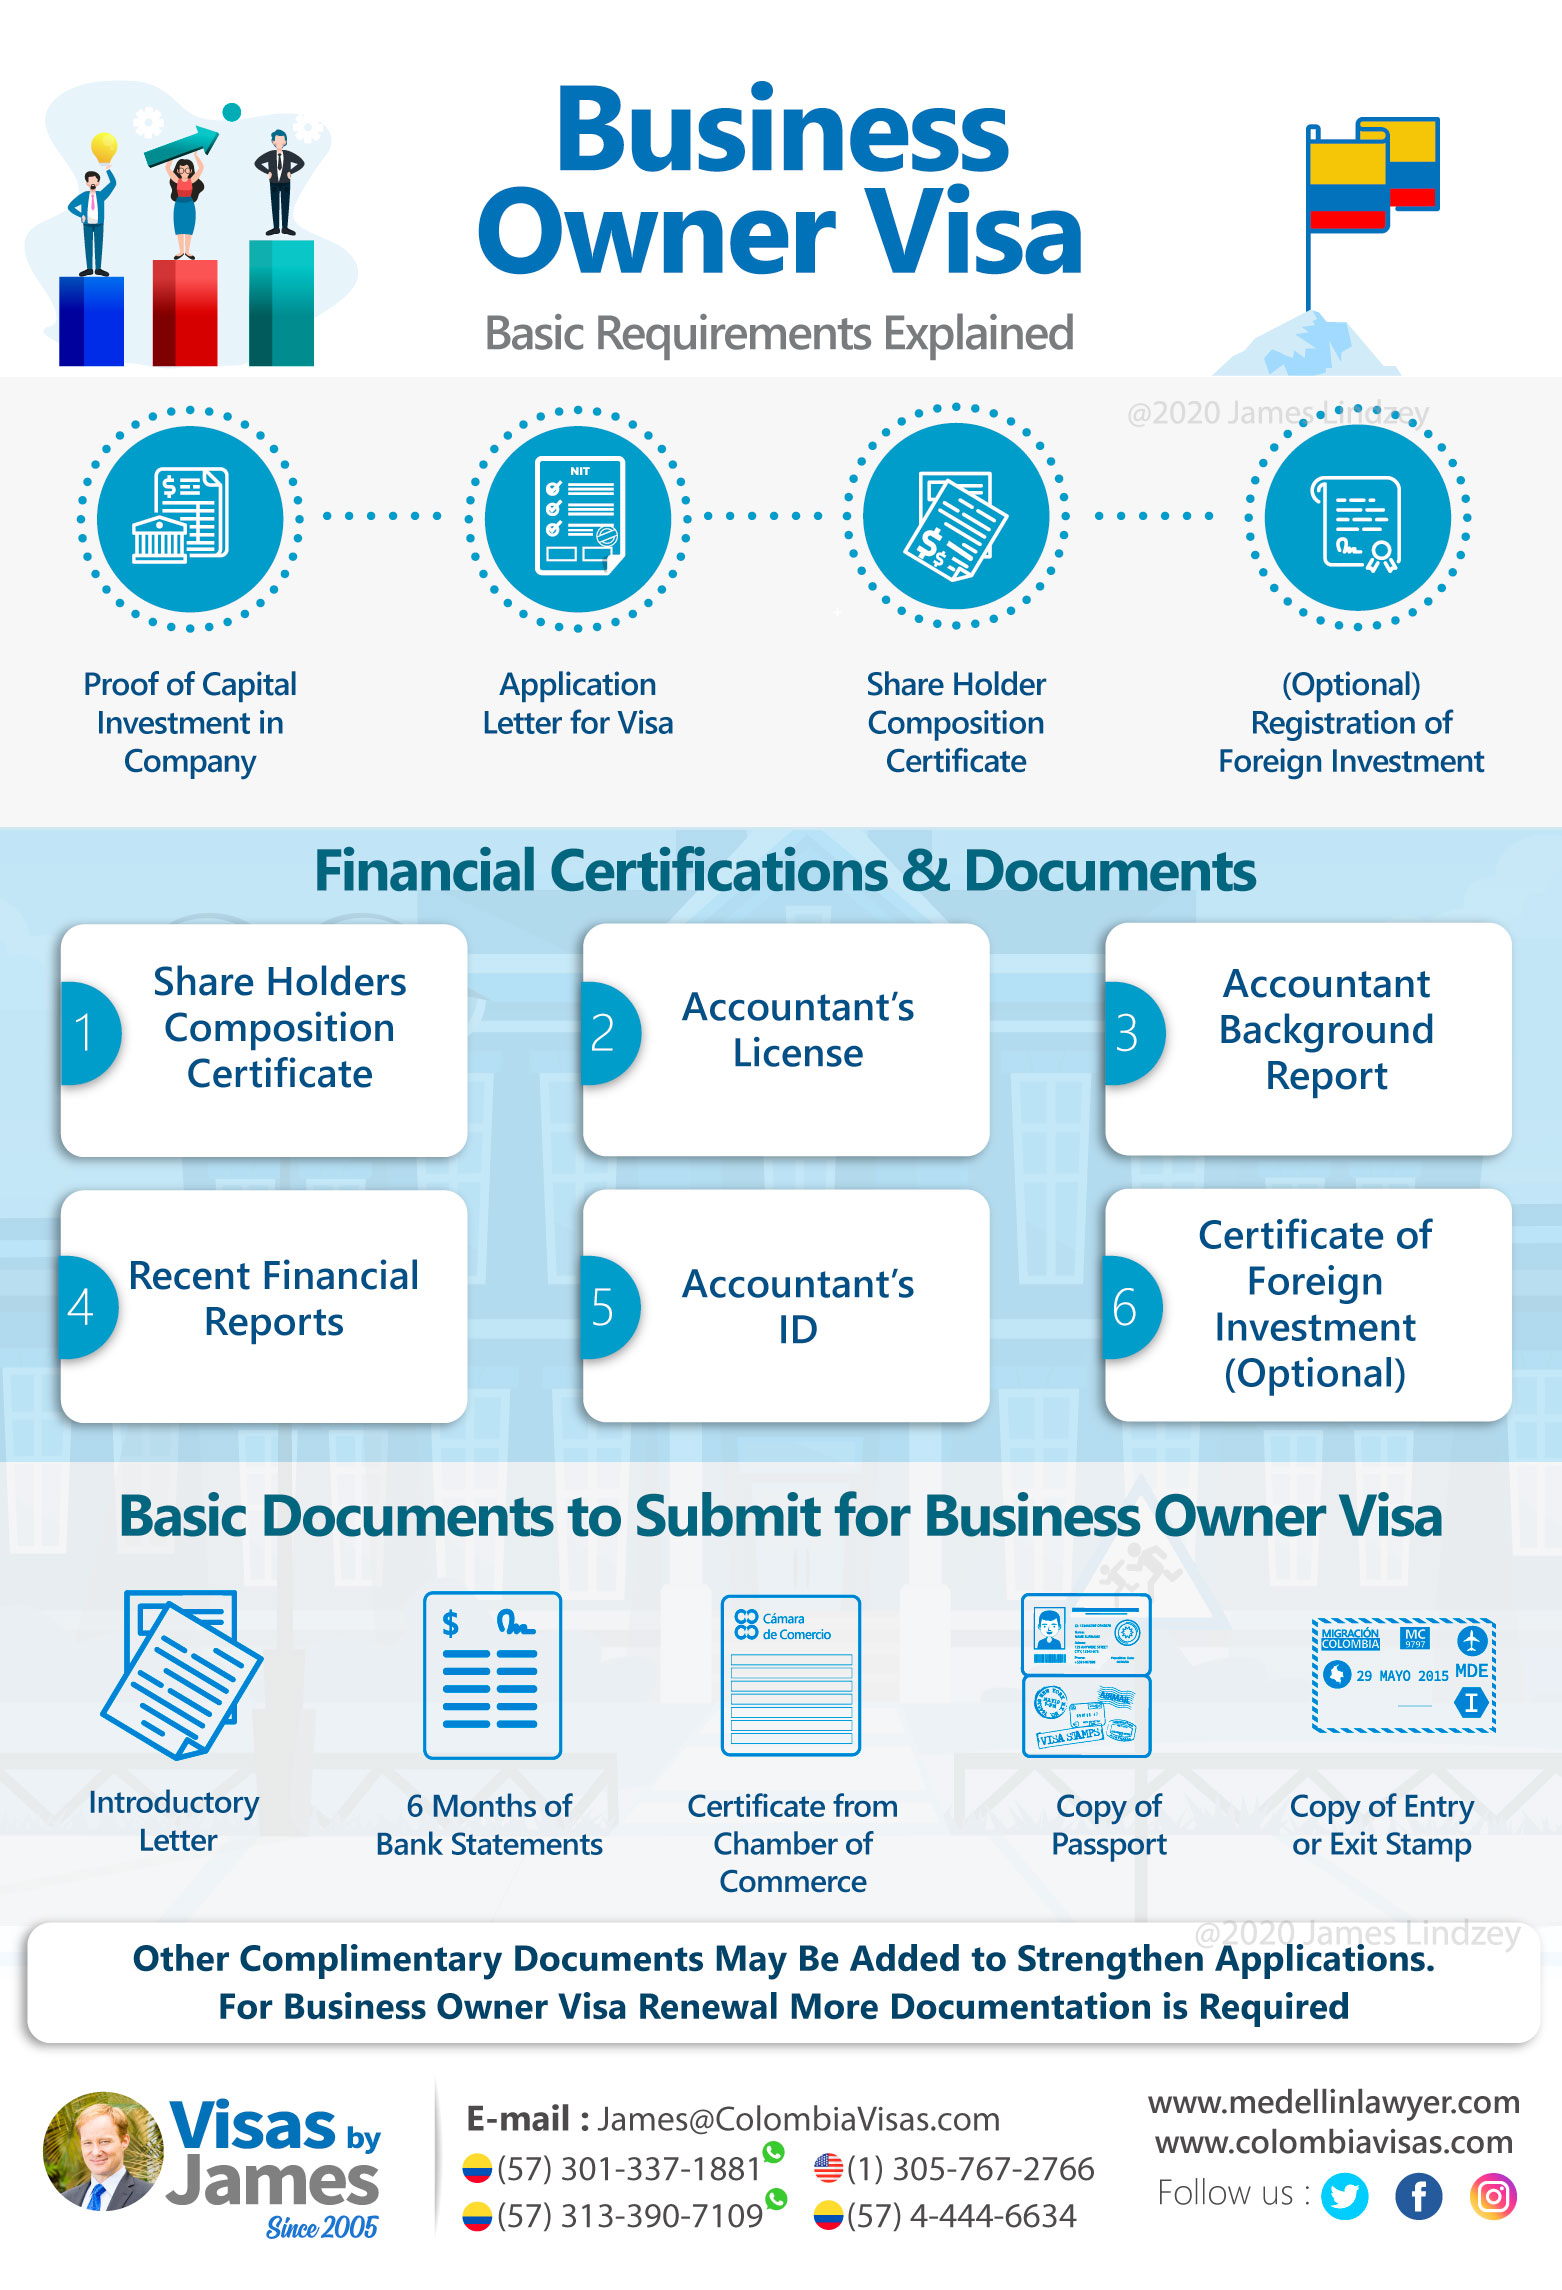 How to get a Business Owner Visa